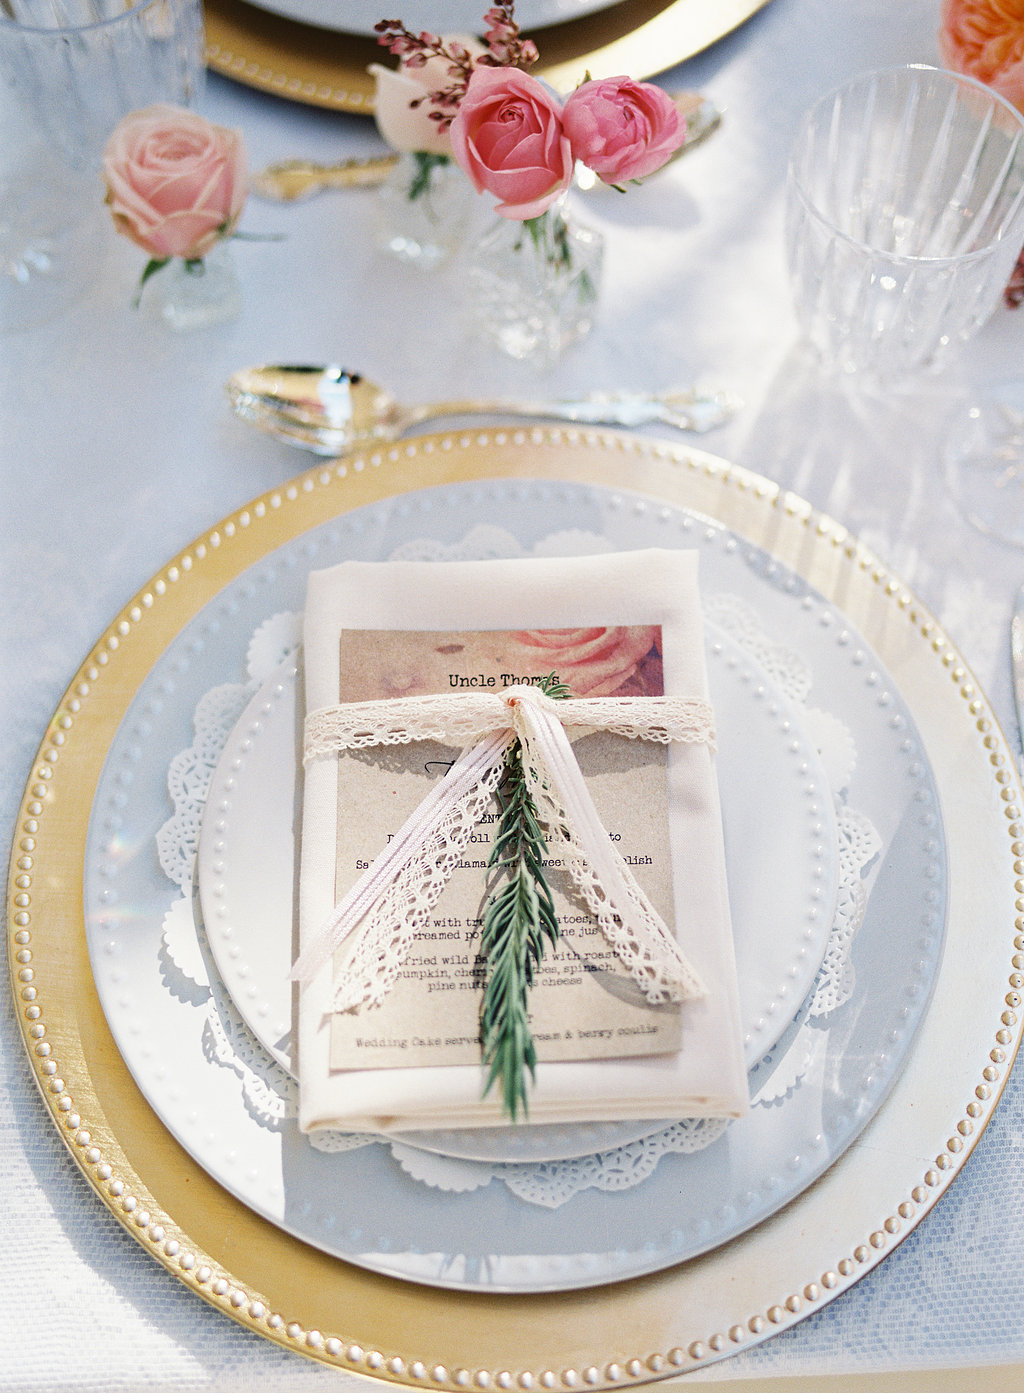 Tablescape Styling for Weddings {Photography by Casey Jane Photography}